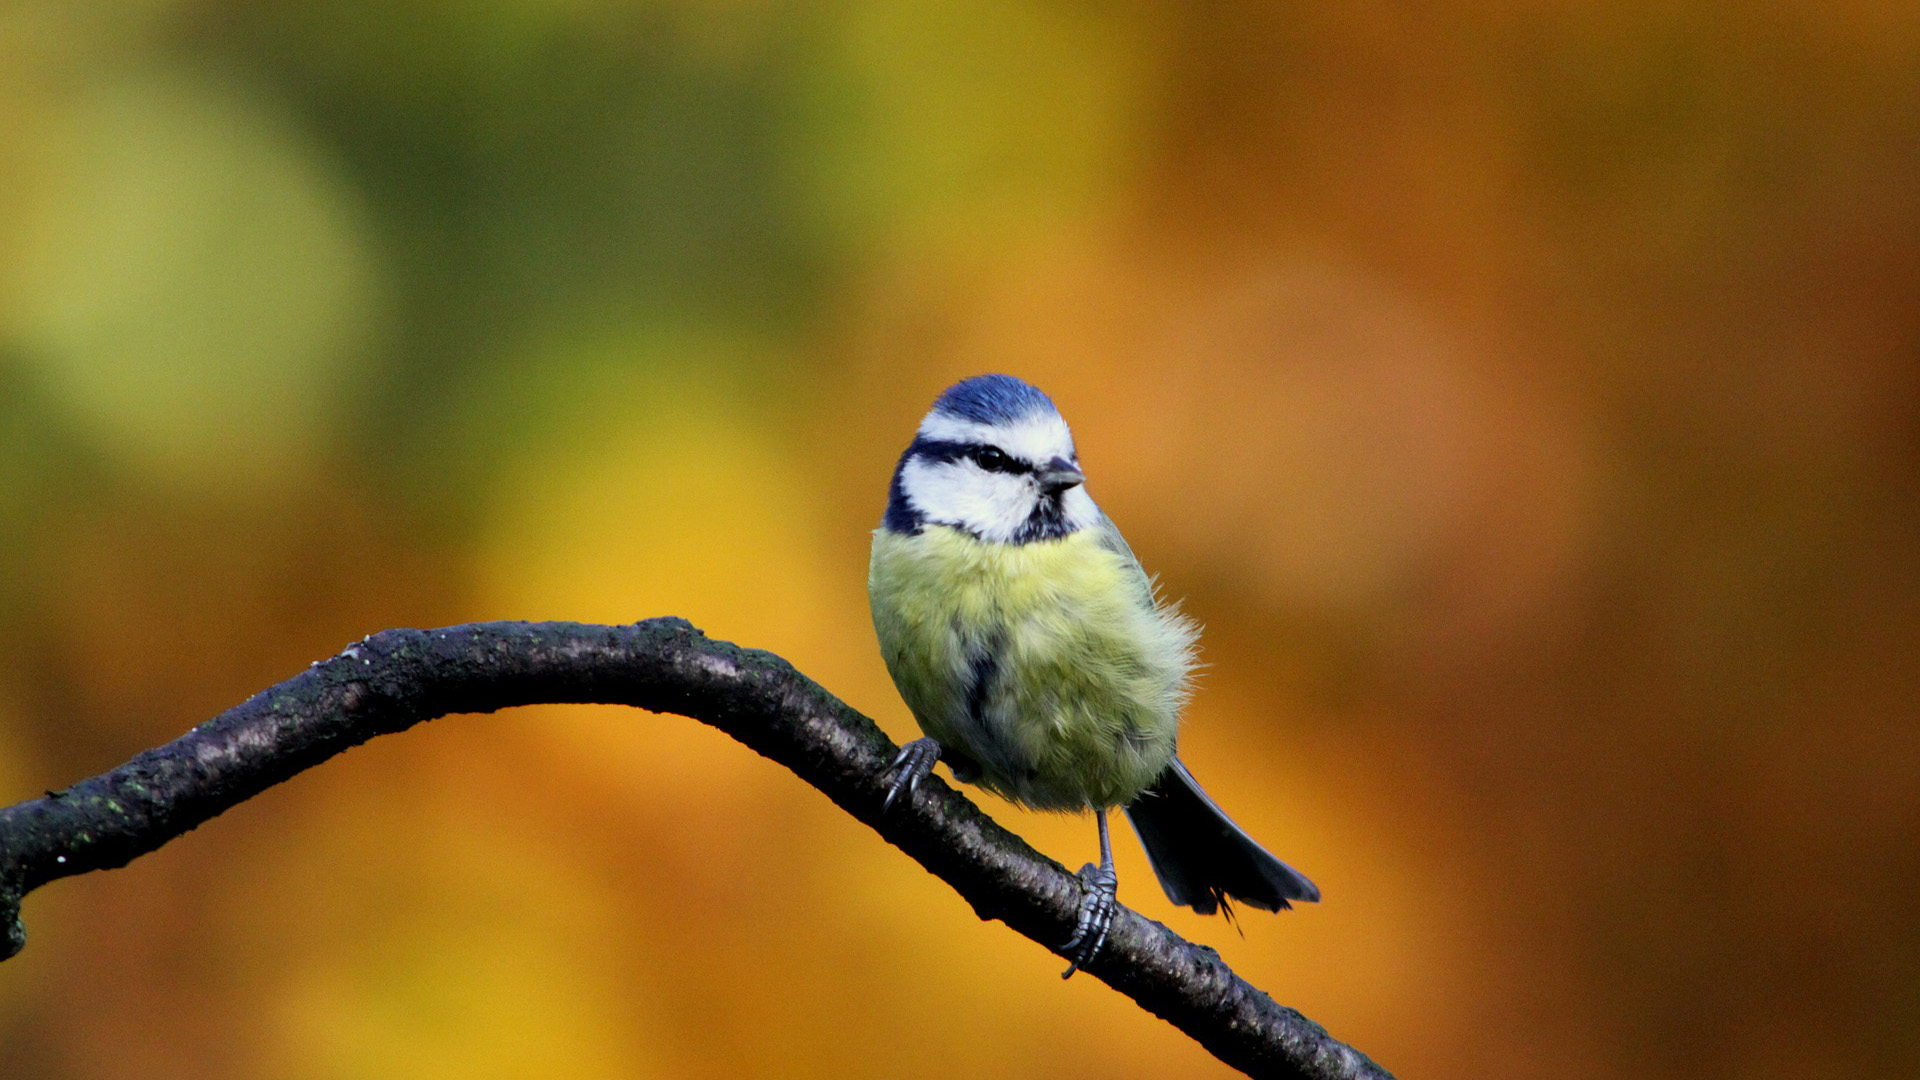 Blue tit hd wallpapers full hd pictures - Animal and bird hd wallpaper ...